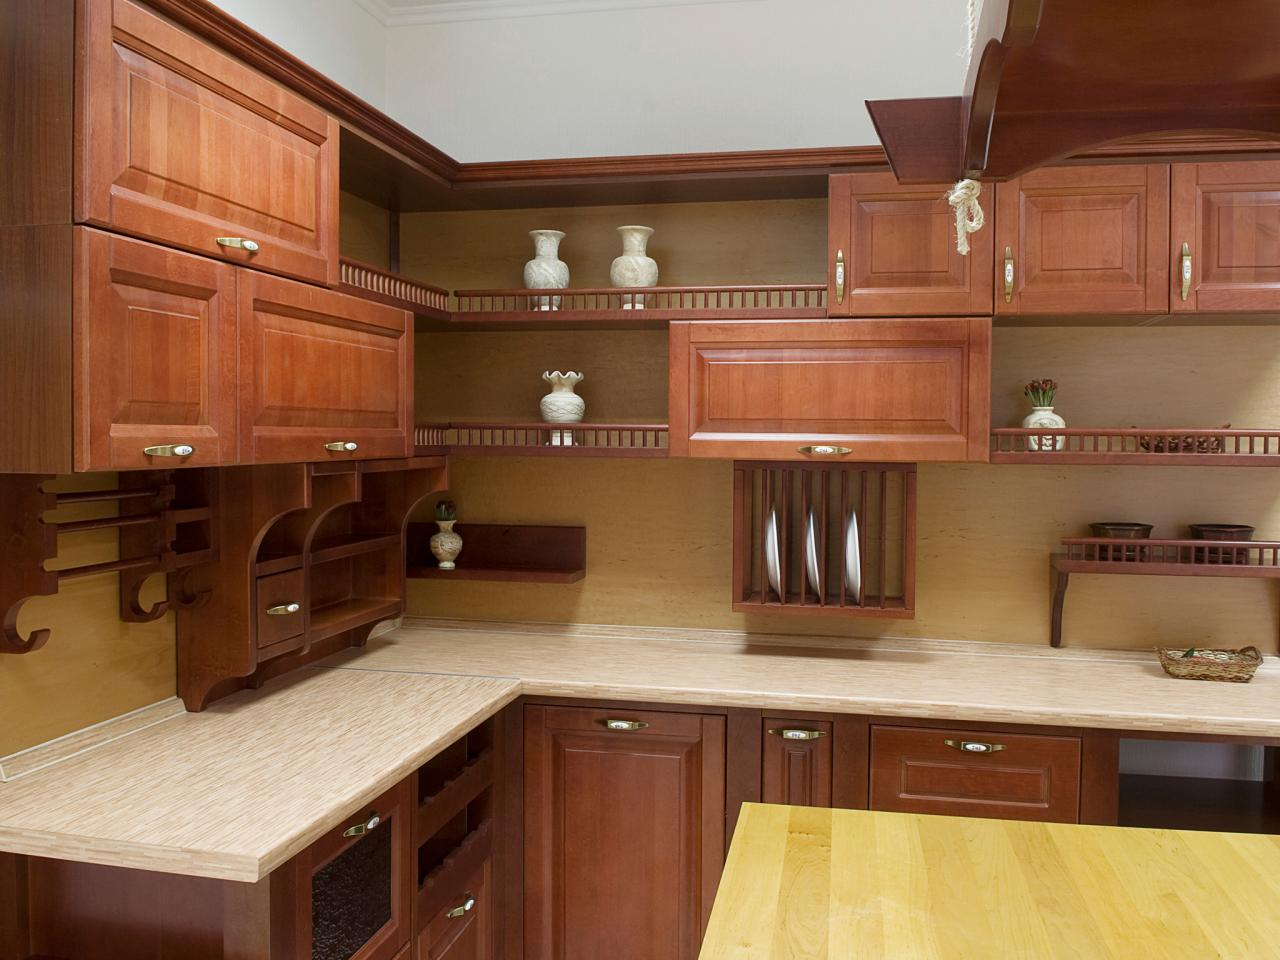 kitchen cabinets design replacement kitchen cabinets HQCMLGY